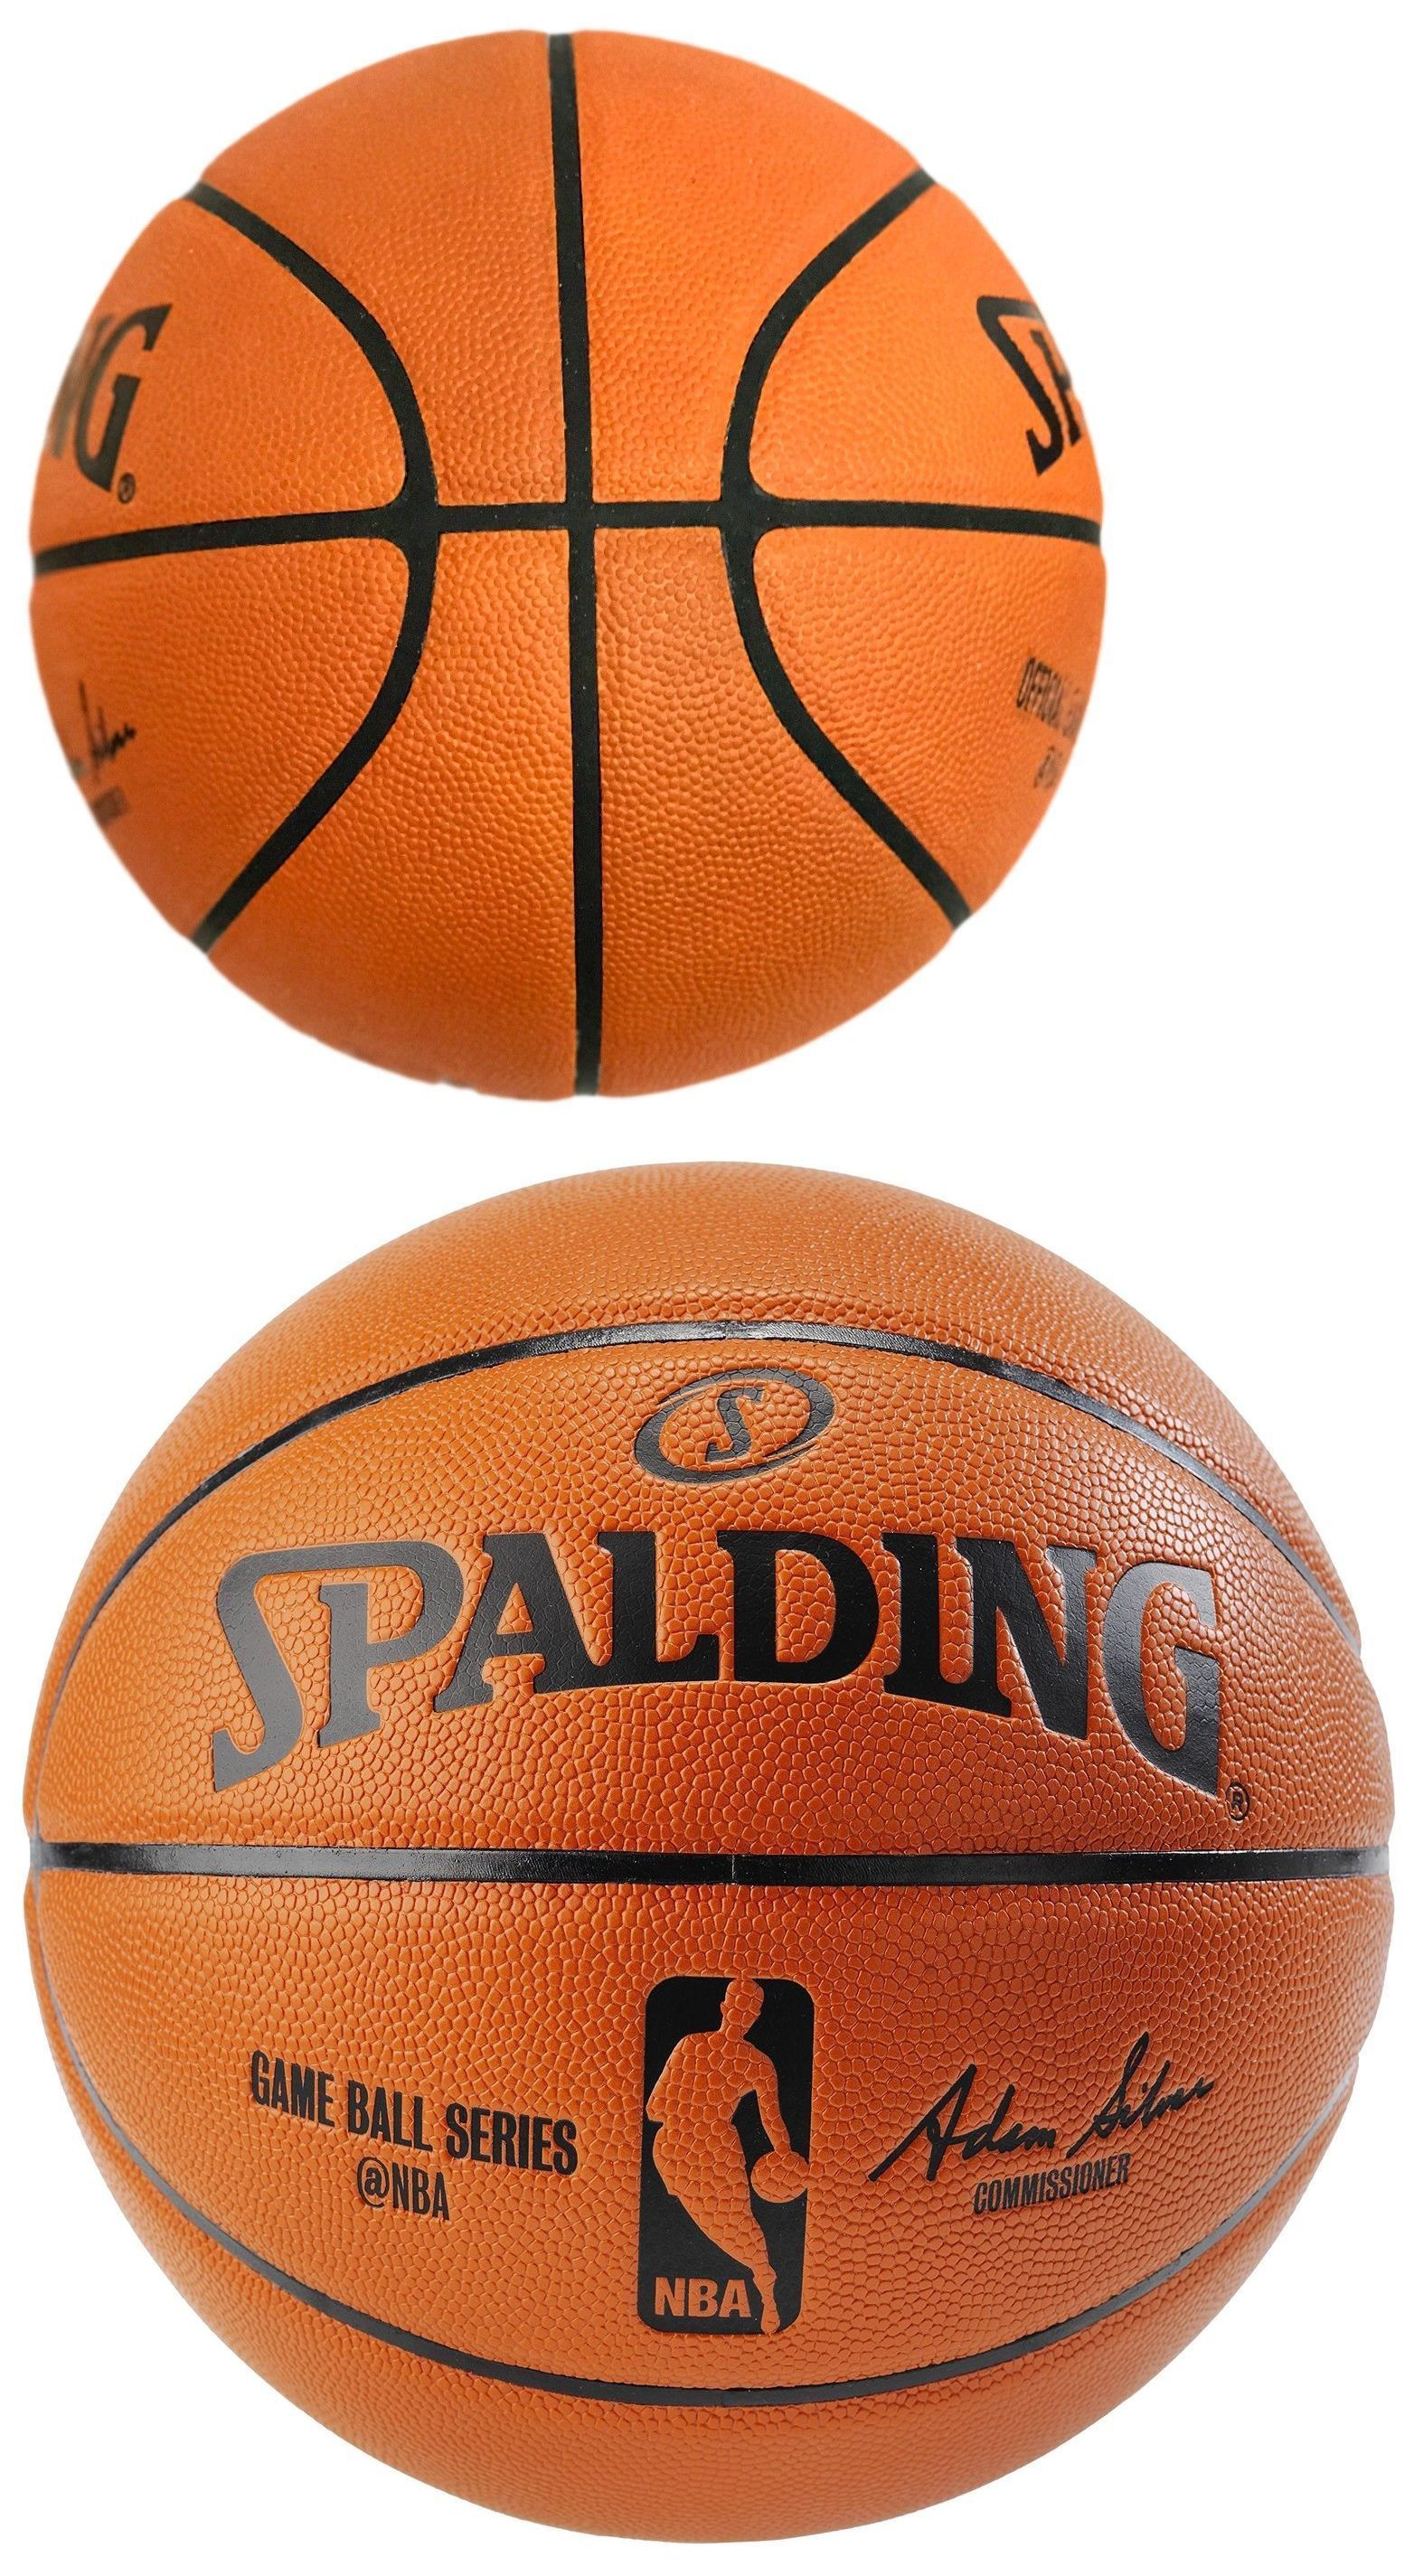 8f3699c838d5 Balls 21208  Spalding Nba Official Authentic Replica Full Size Game Ball  Basketball 2018! -  BUY IT NOW ONLY   62.07 on eBay!